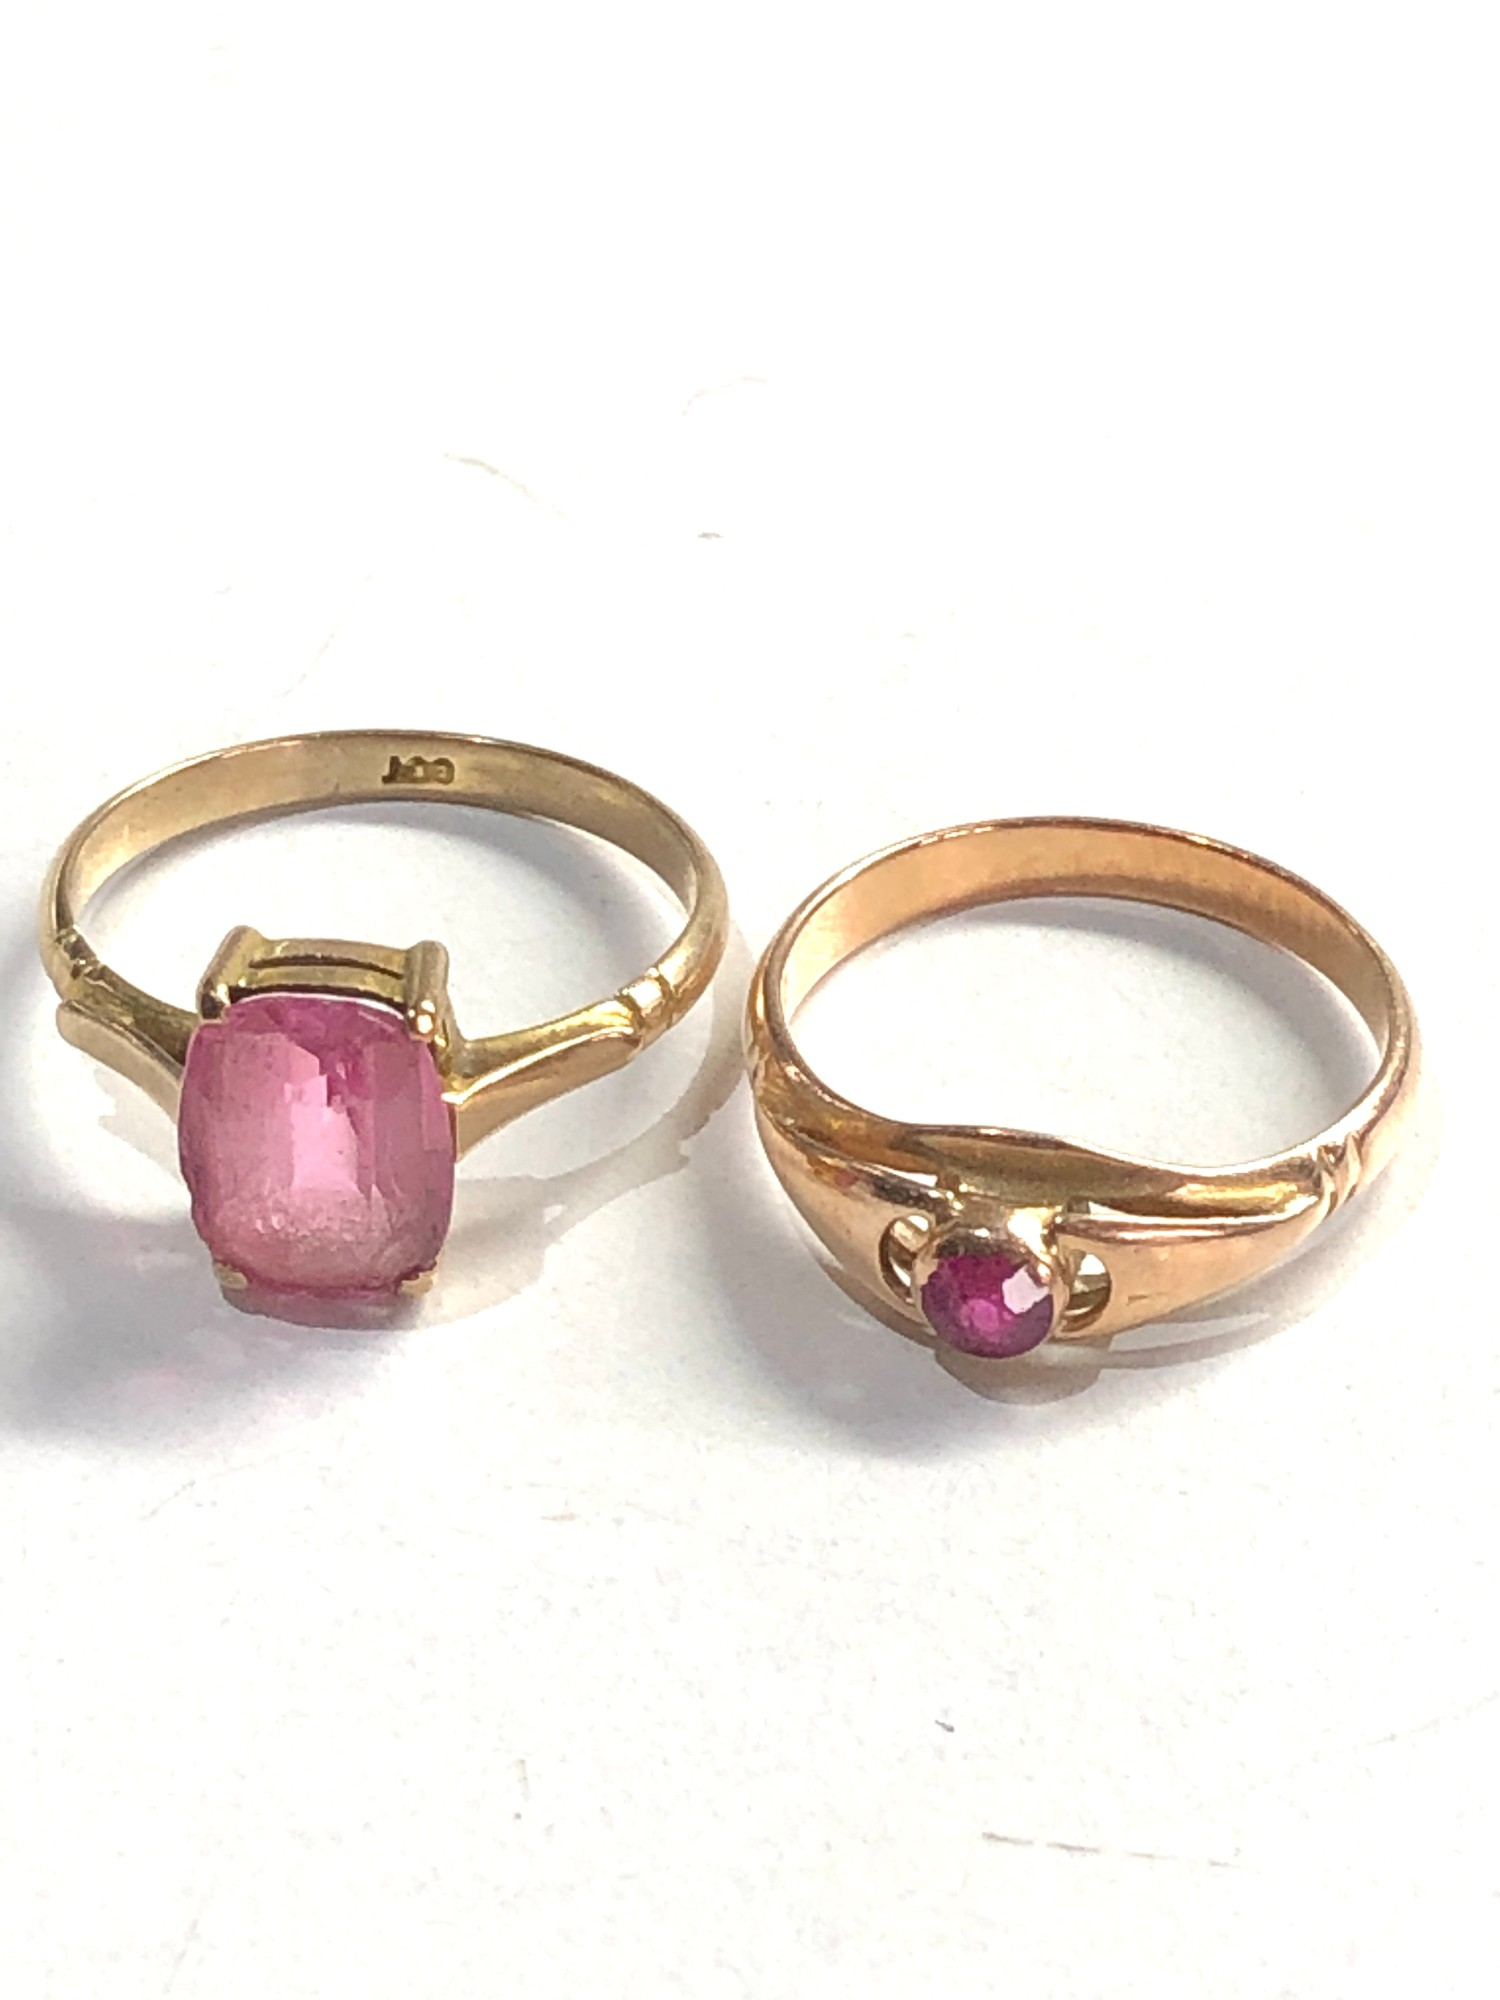 2 x 9ct Gold dress rings 4.2g - Image 2 of 3